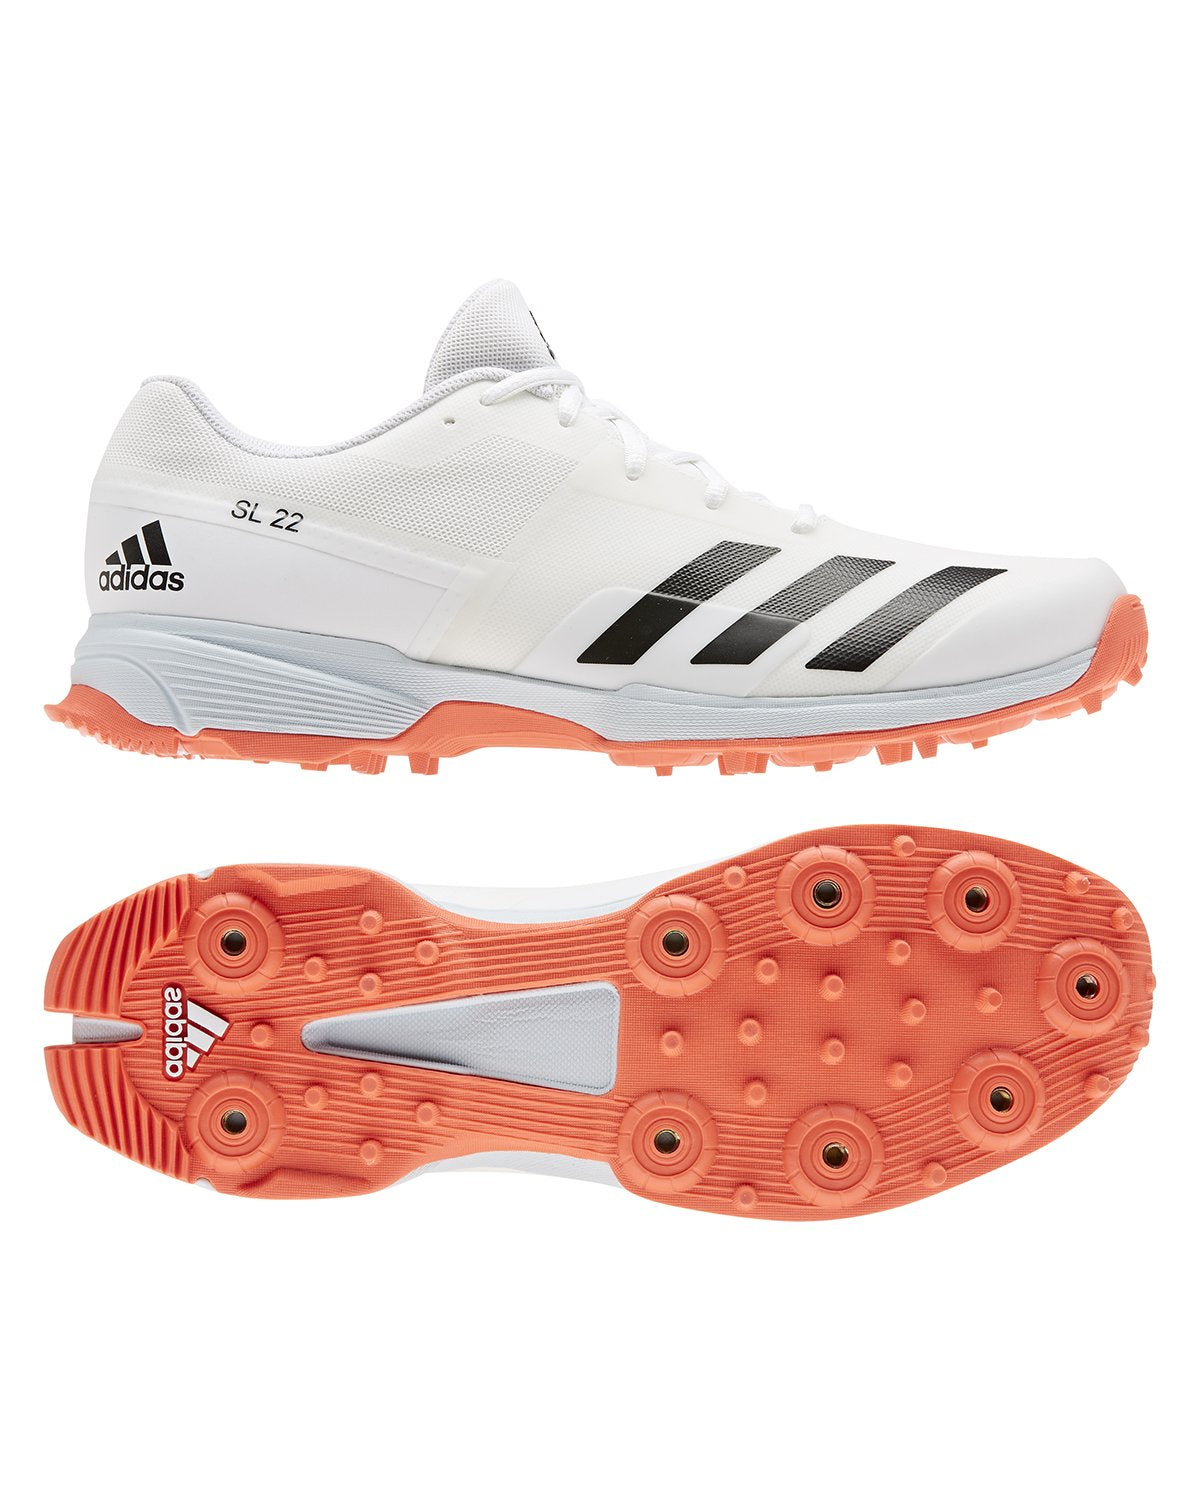 cricket shoes adidas spikes